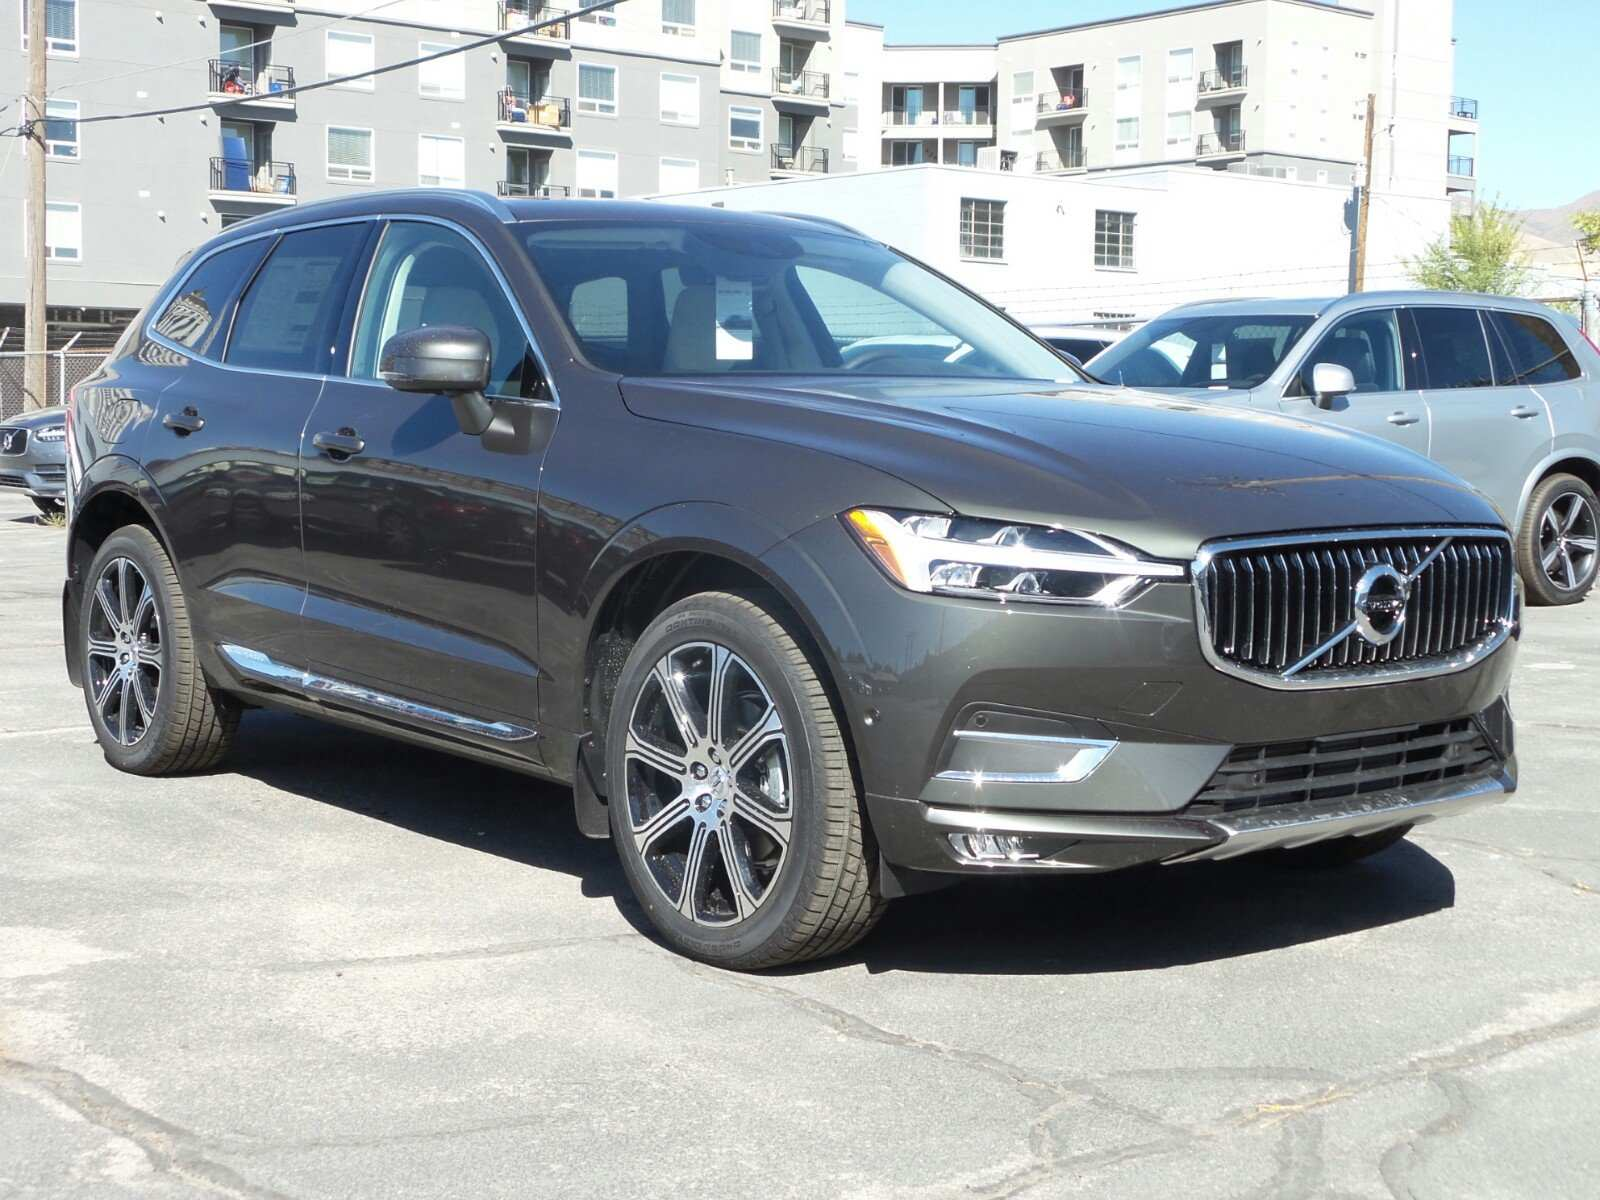 72 New 2019 Volvo Inscription Exterior by 2019 Volvo Inscription